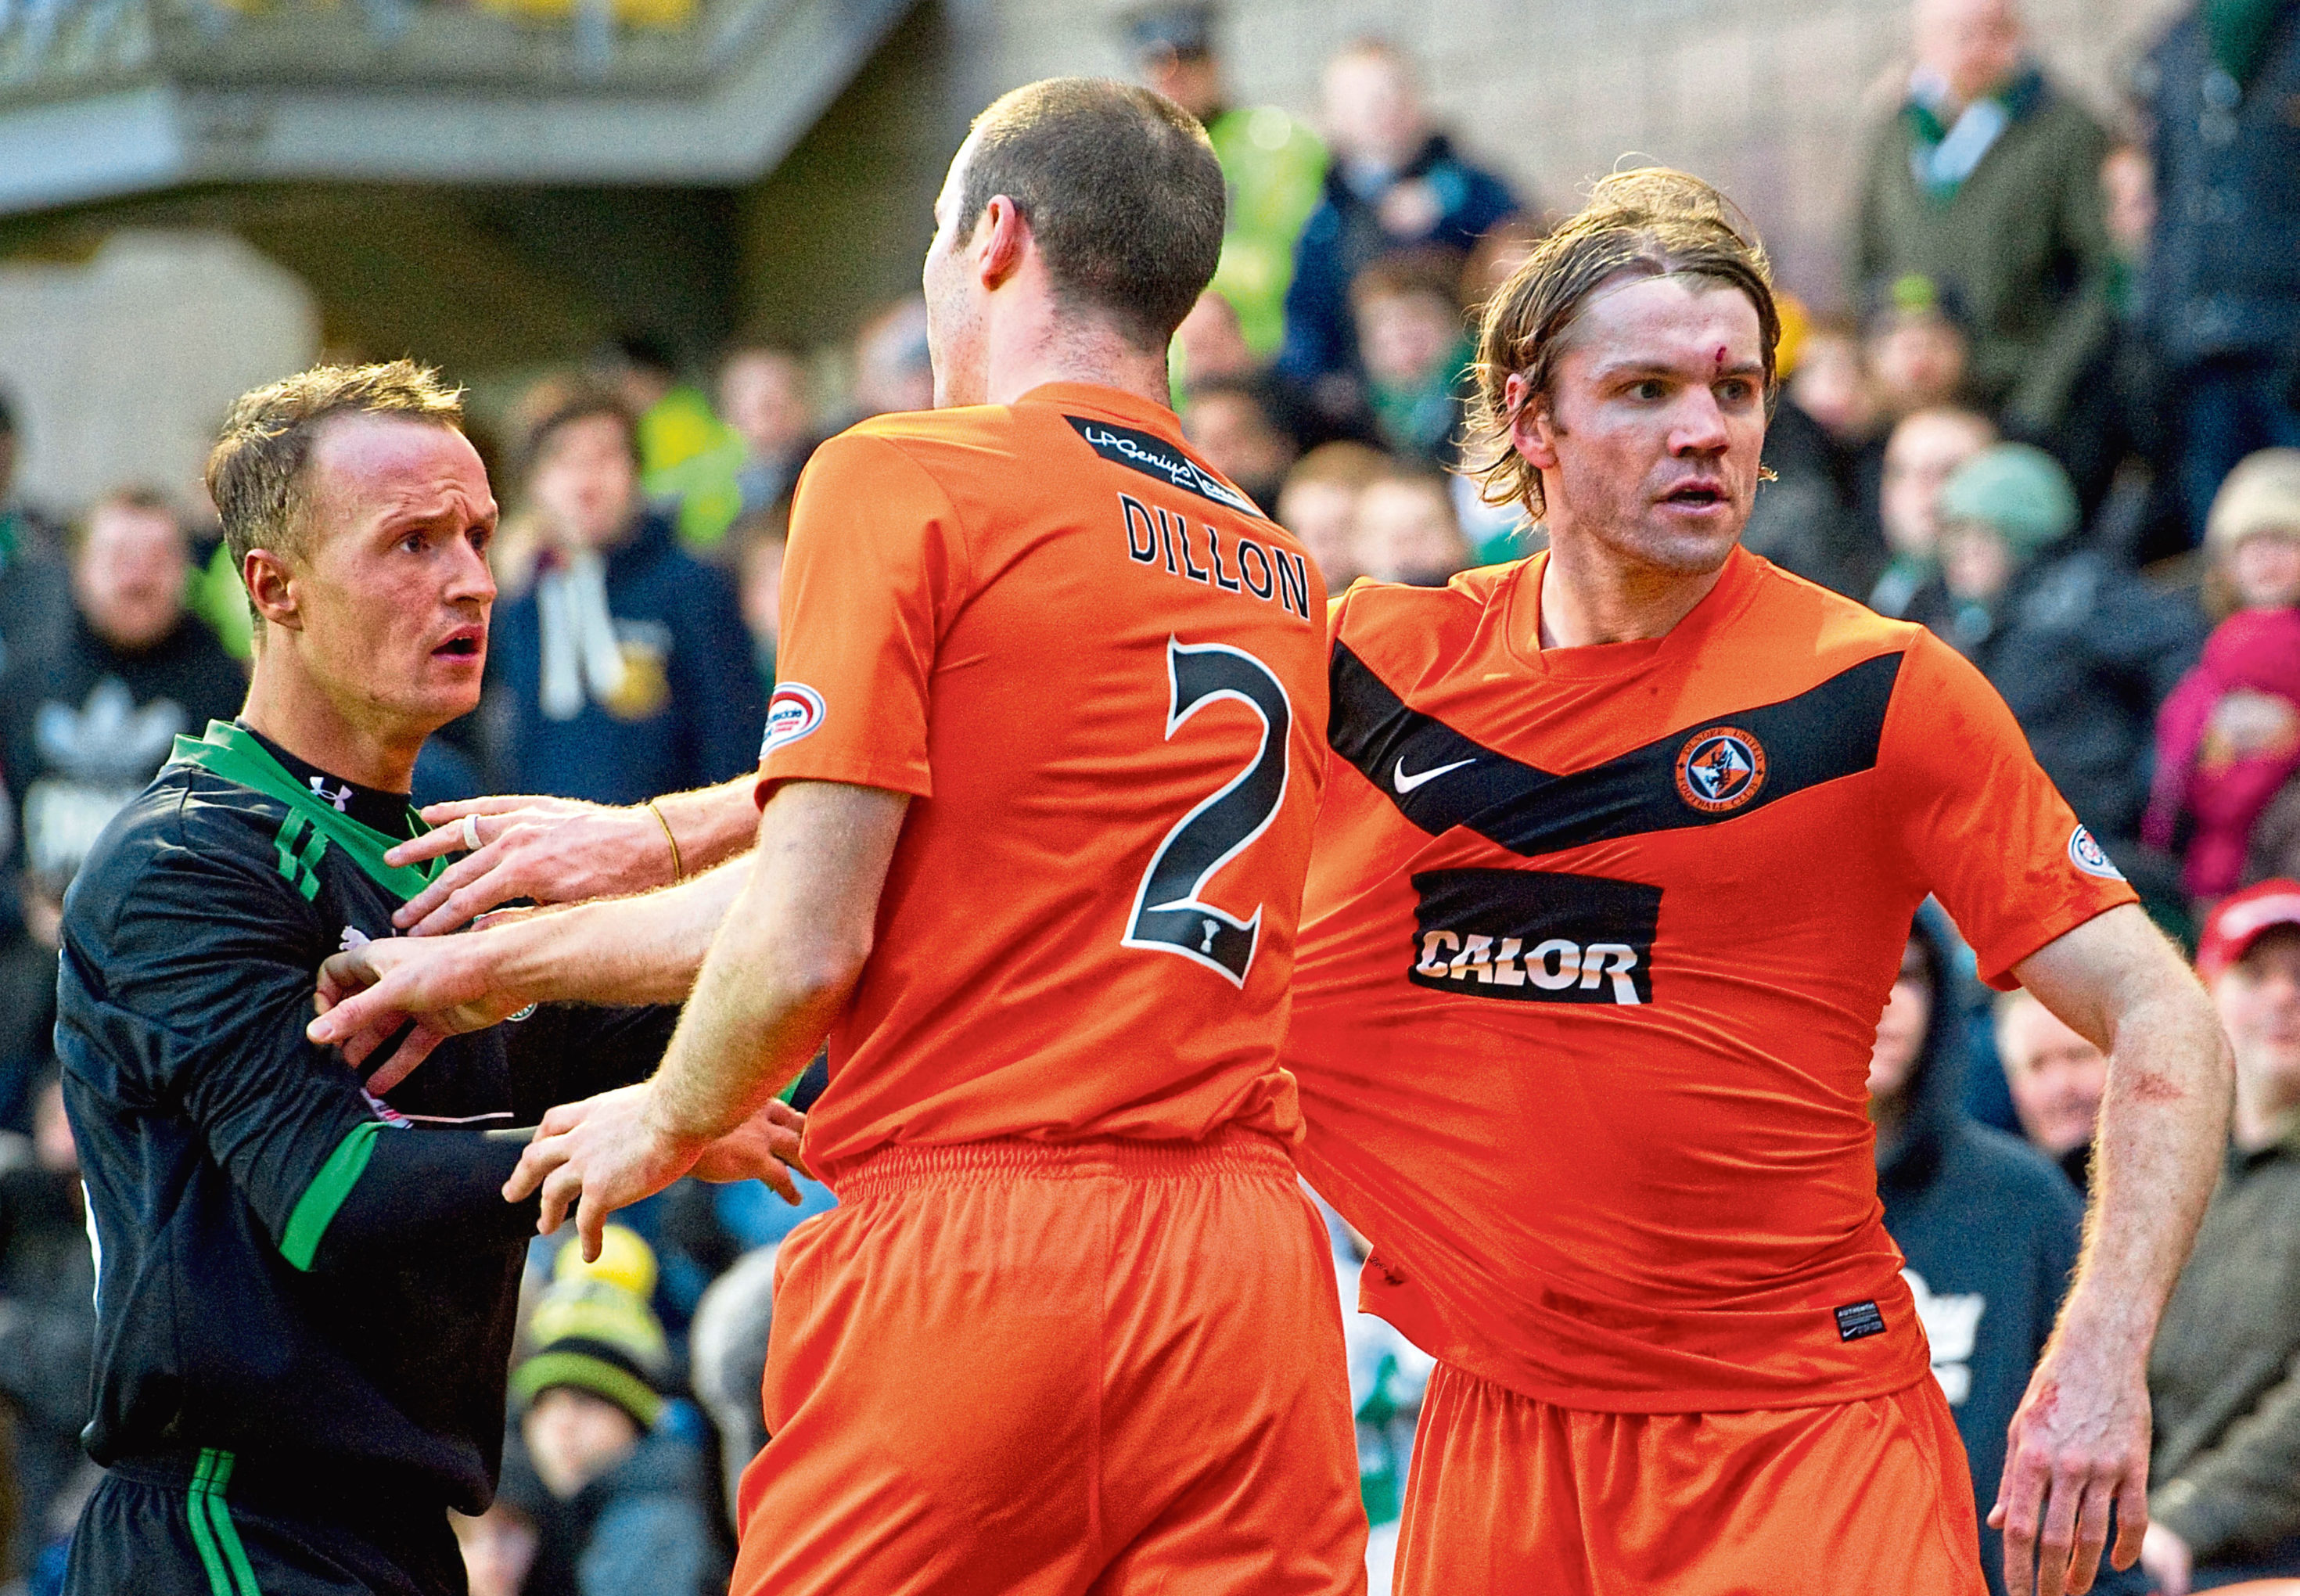 Sean Dillon and Robbie Neilson teamed up in Dundee United's defence when Craig Levein was boss at Tannadice. Above sees the pair involved with then Hibs forward Leigh Griffiths.